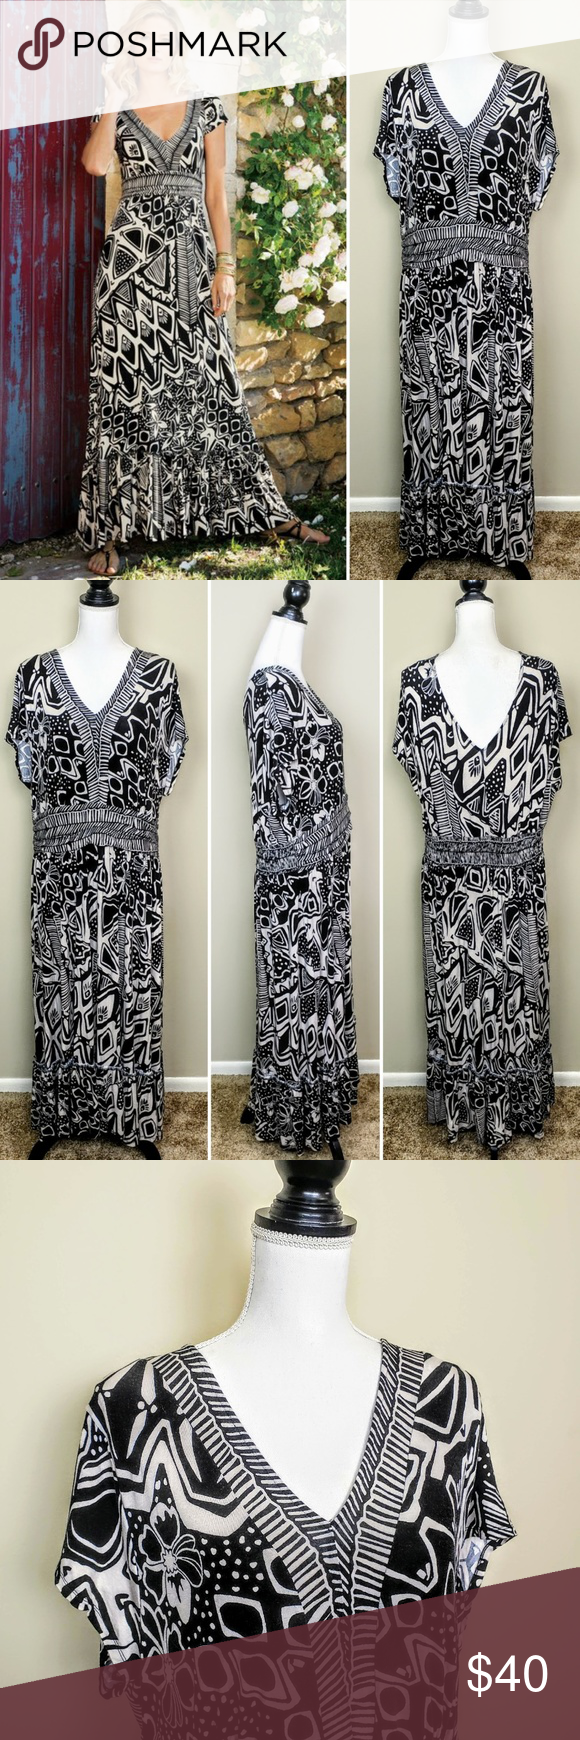 Soft Surroundings Maxine Maxi Dress V Neck 3x Gently Used Excellent Condition No Rips No Stains N Soft Surroundings Dresses Style Maxi Dress Maxi Dress [ 1740 x 580 Pixel ]